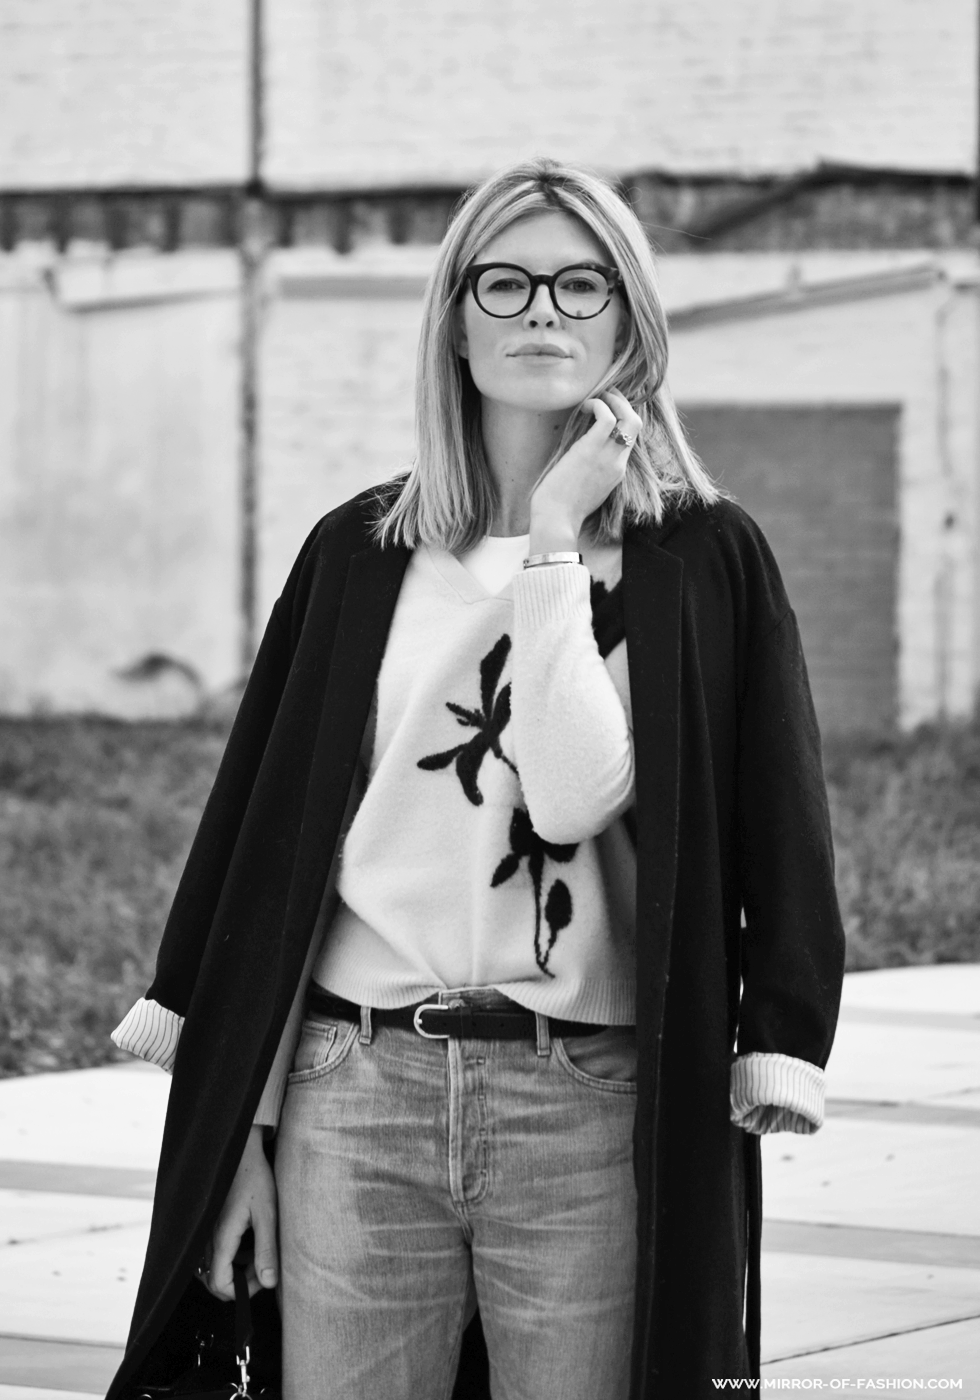 Outfit of the day, IKKS, Max Mara, Citizens of Humanity, Aldo, Fendi, Dewolf, isabel marant, Saint Laurent, spell on me, ootd, style, fashion, look